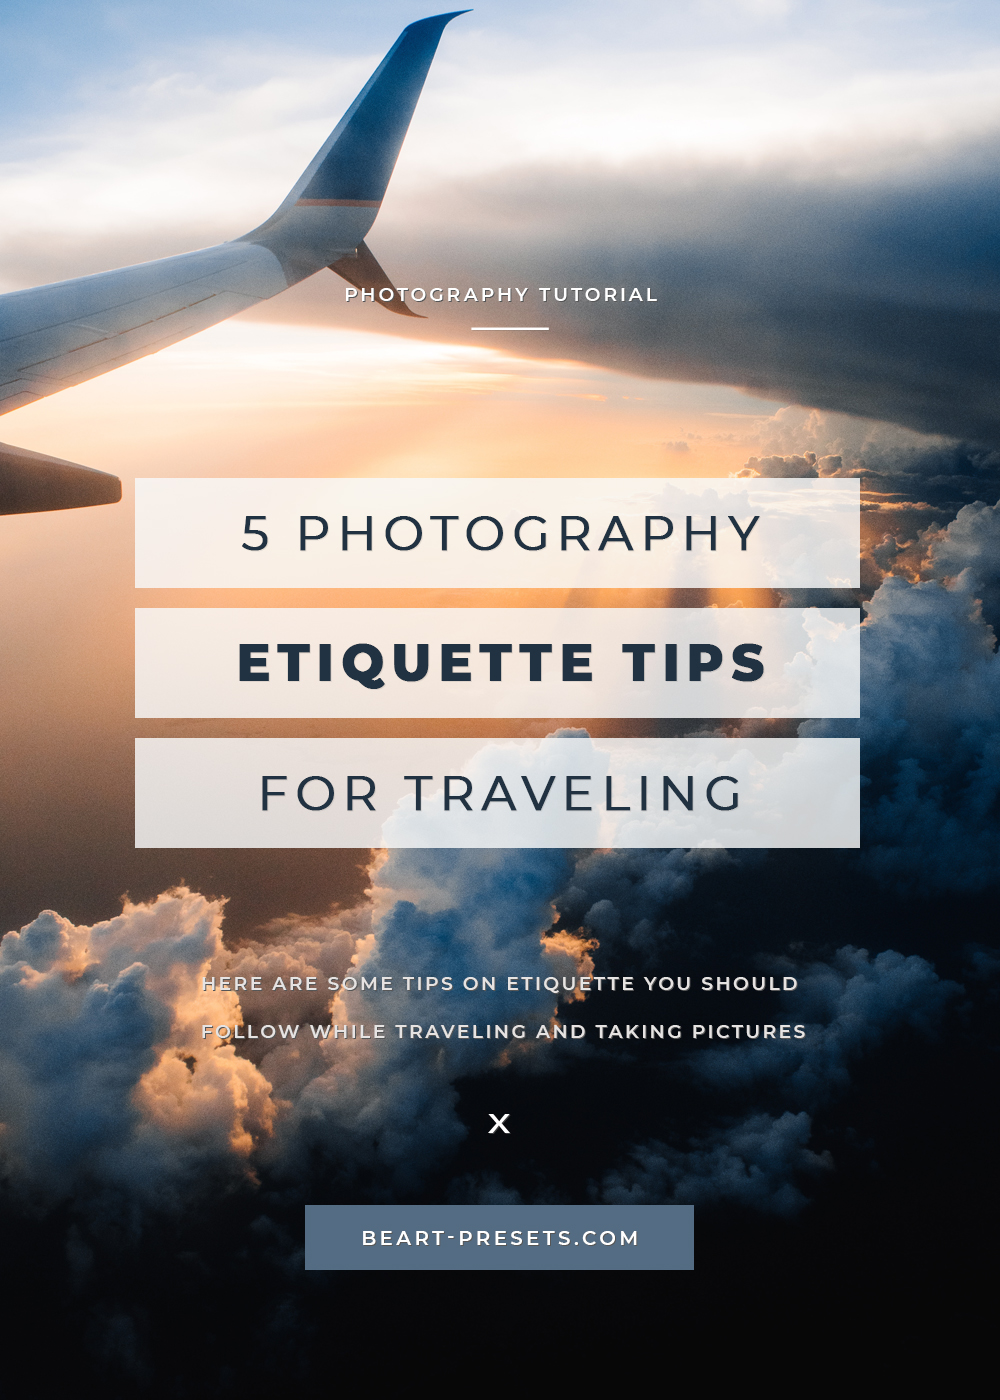 etiquette tips for traveling